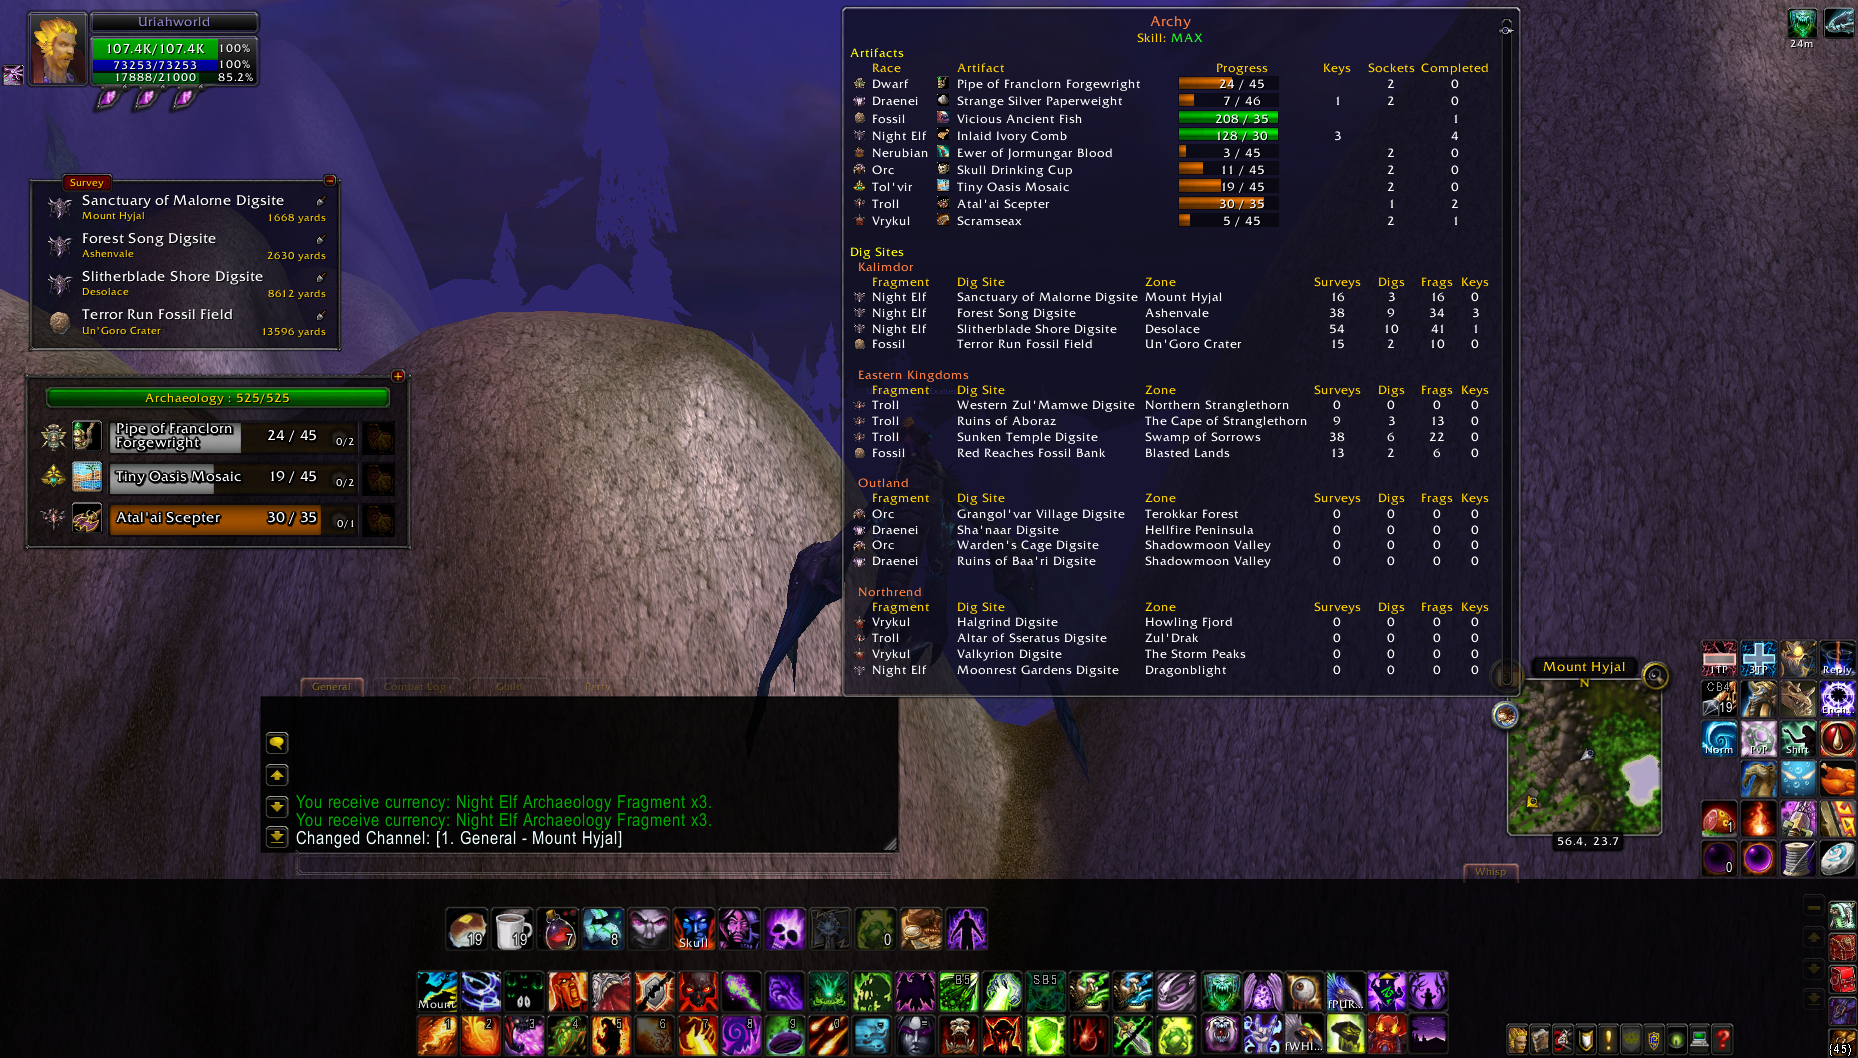 Archy Addon | WoW Dig Site